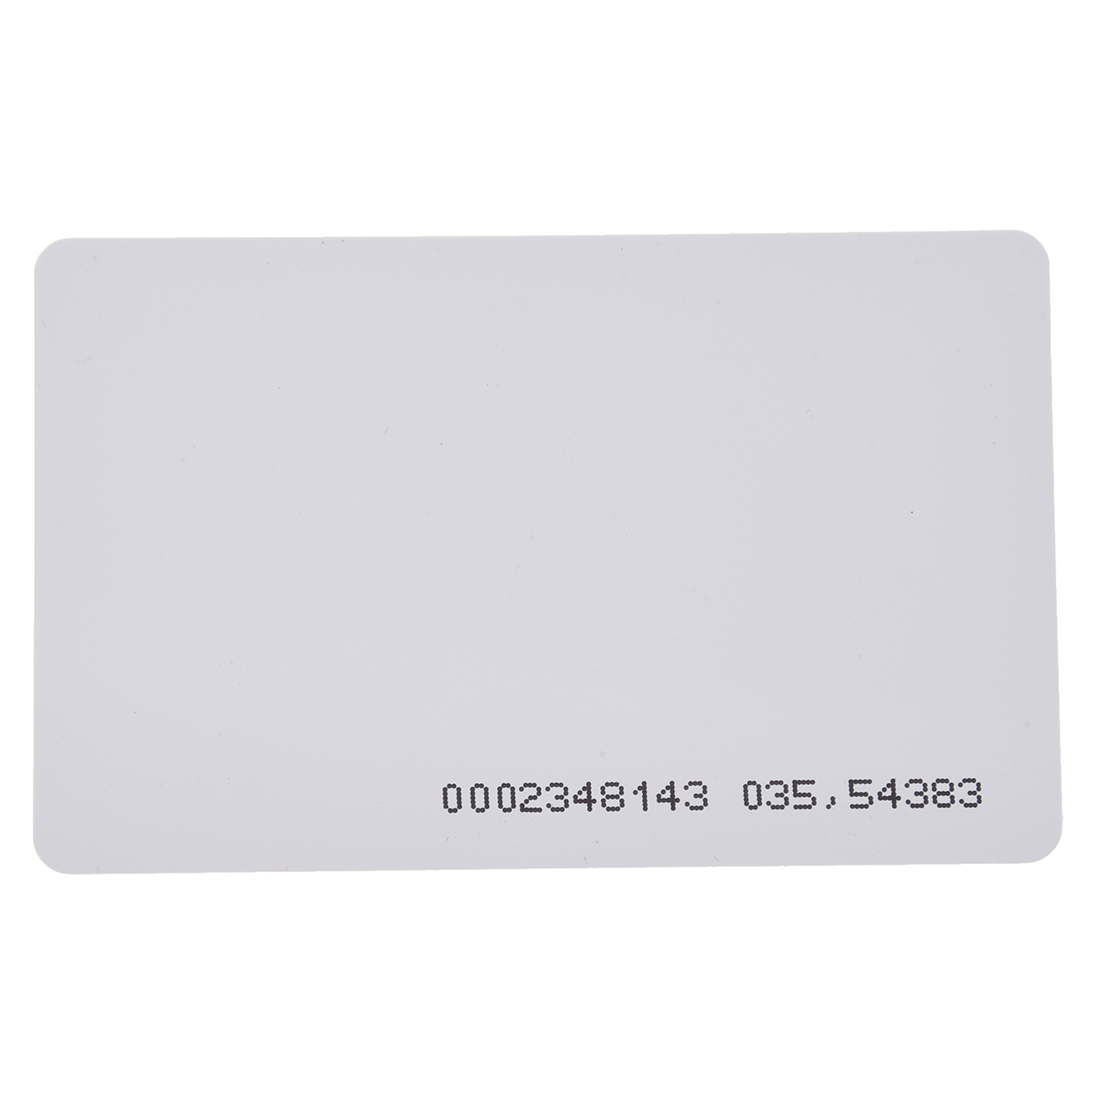 125khz em4100 door entry access blank white proximity rfid clamshell thick card thickness 1 9mm pack of 10 Wholesale 125Khz Door Entry Access Proximity RFID Card Wht 10 Pcs